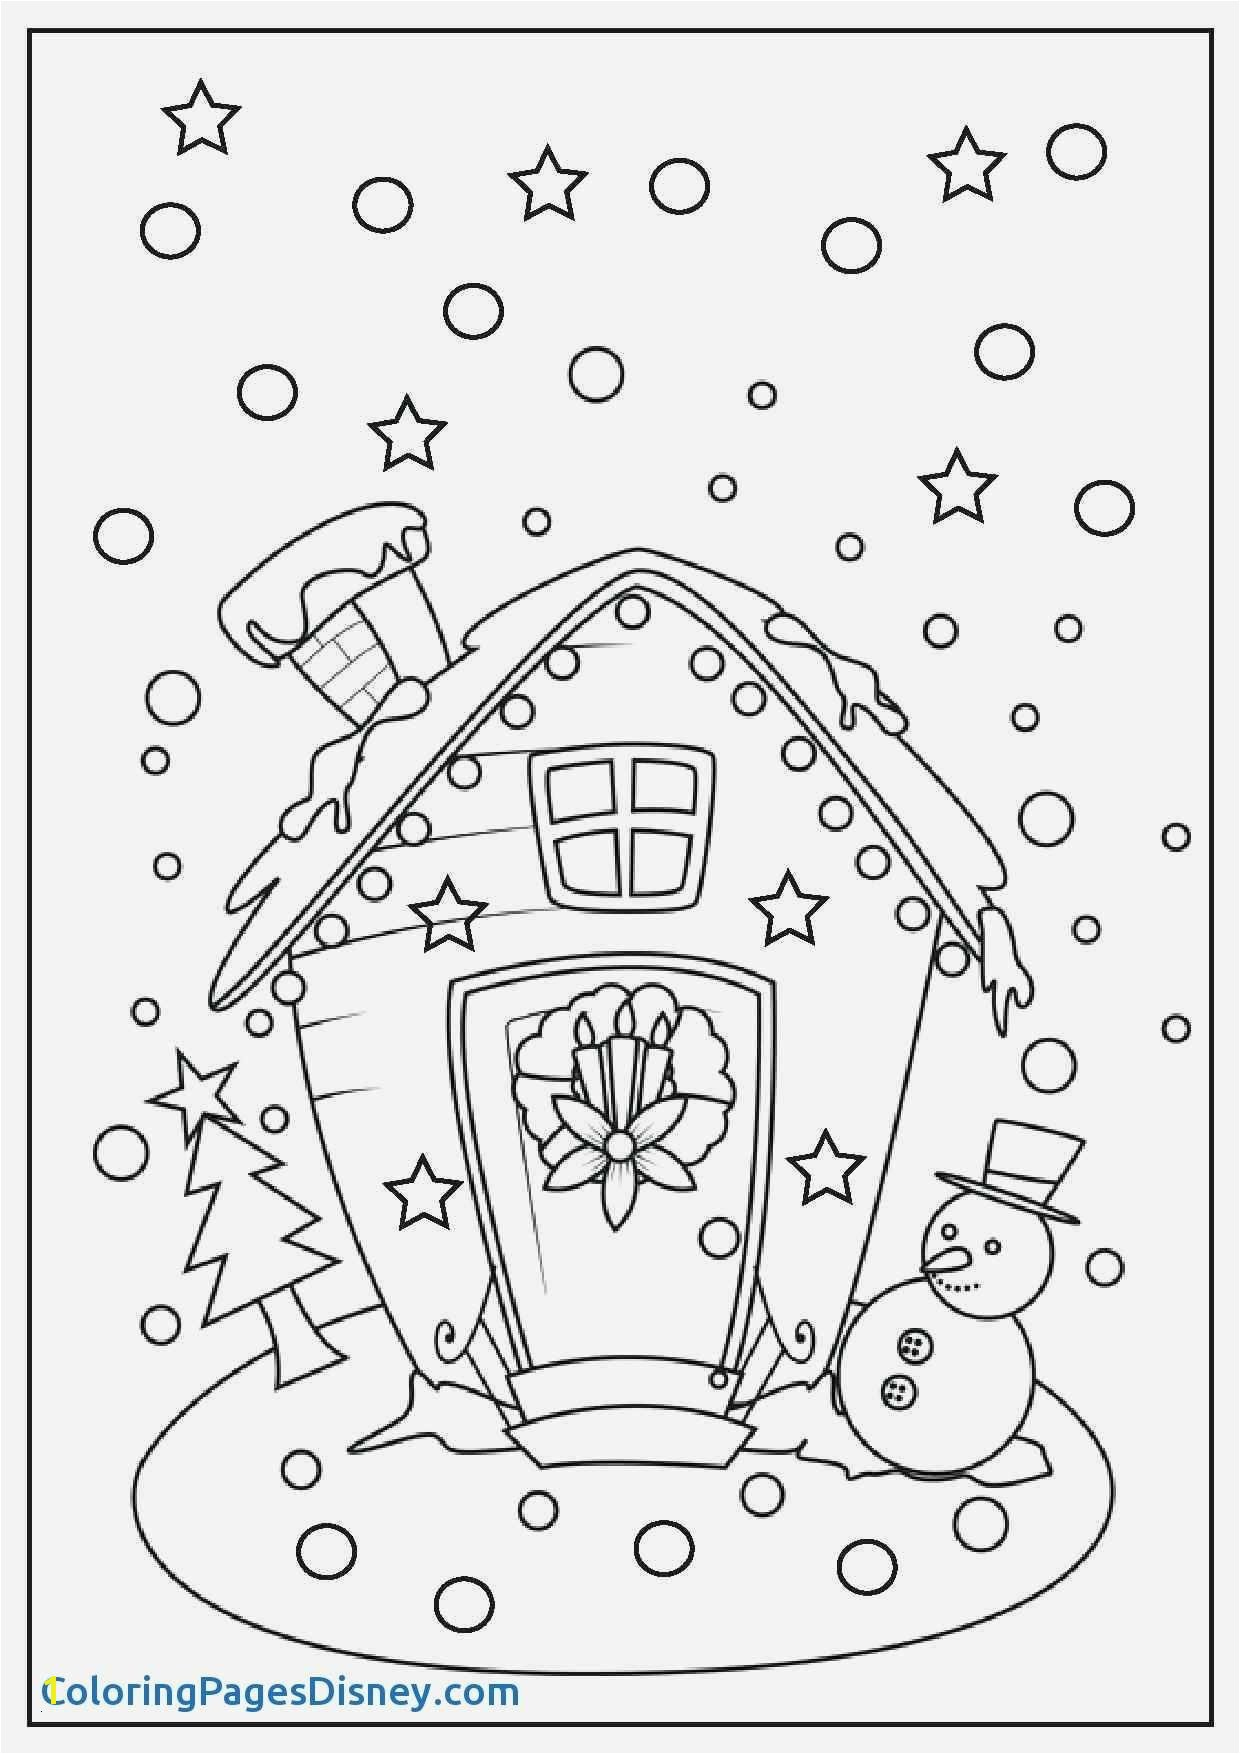 Free Printable Alphabet Coloring Pages For Kids 34 Best Coloring